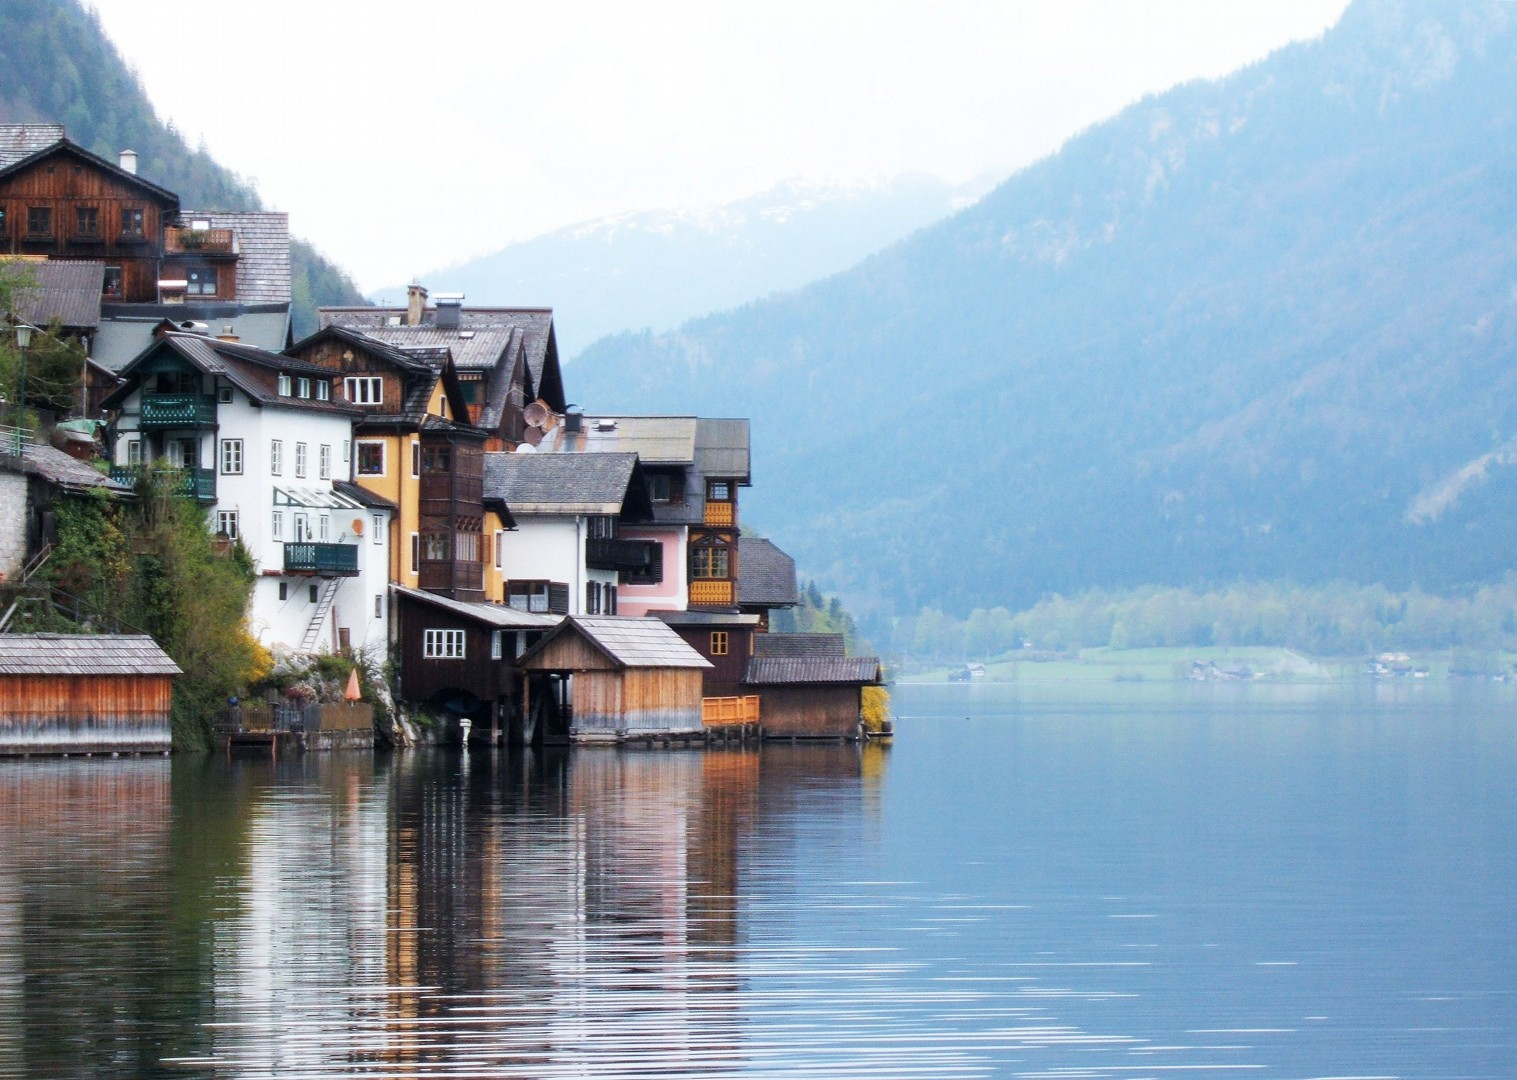 lake-hallstatt-austria-ten-lakes-tour-family-cycling-trip.jpg - Austria - Ten Lakes Tour - Self-Guided Family Cycling Holiday - Family Cycling